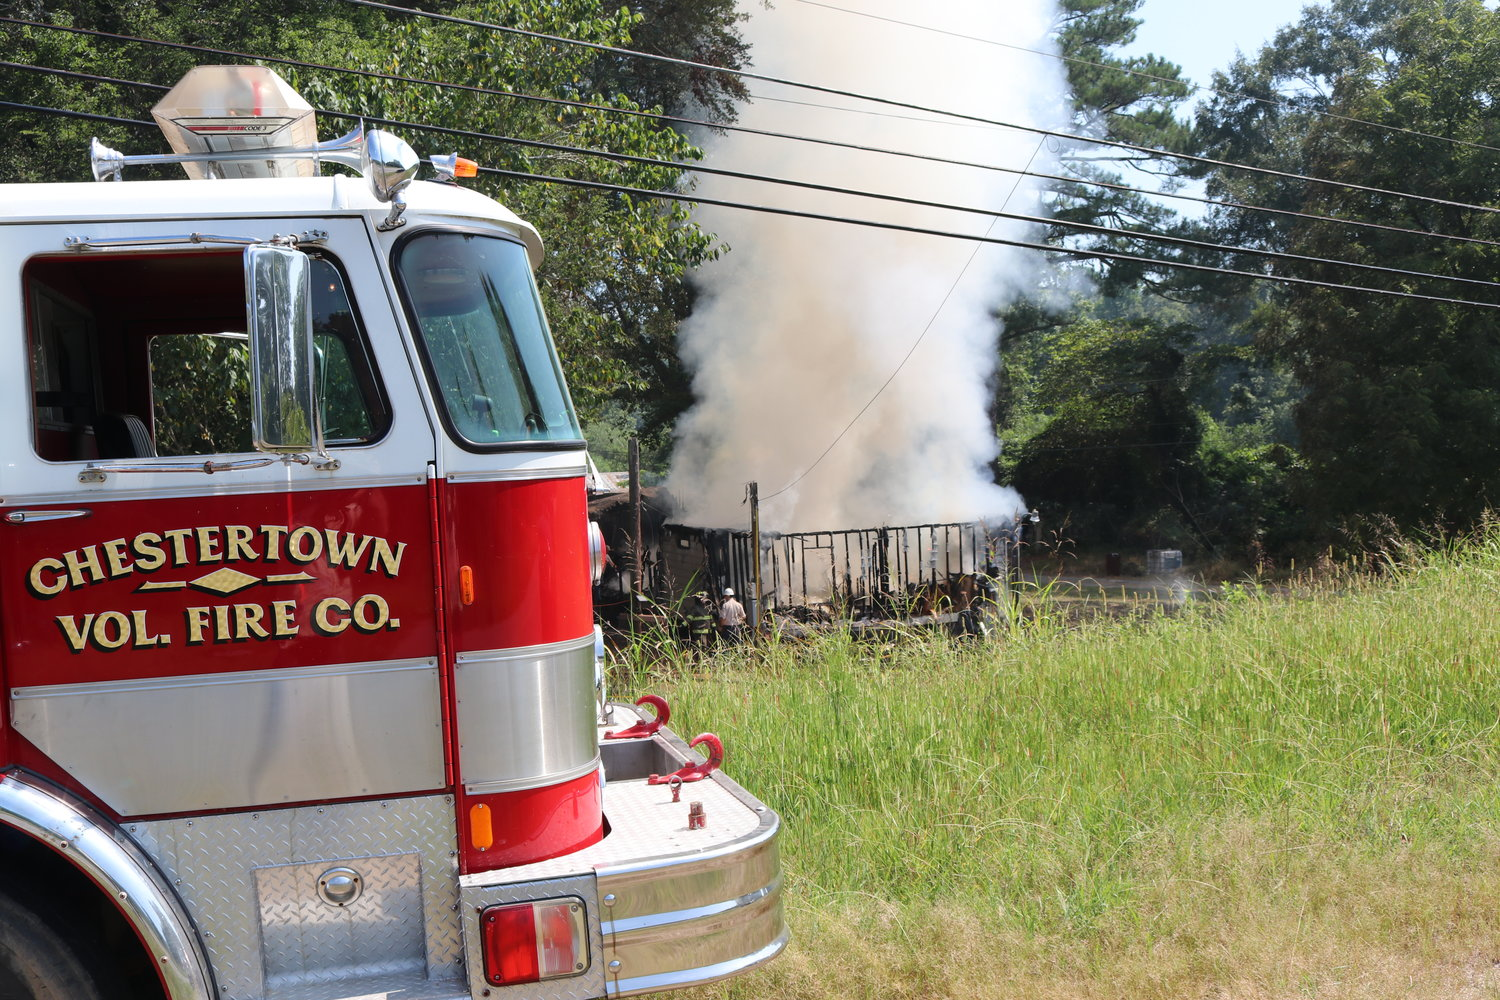 A fire in a mobile home on the Mulberry Fork (across from T&R Grocery) brought volunteer firefighters from Sipsey, Empire, and Town Creek. The Chestertown fire truck belongs to the Towncreek Volunteer Fire Department.